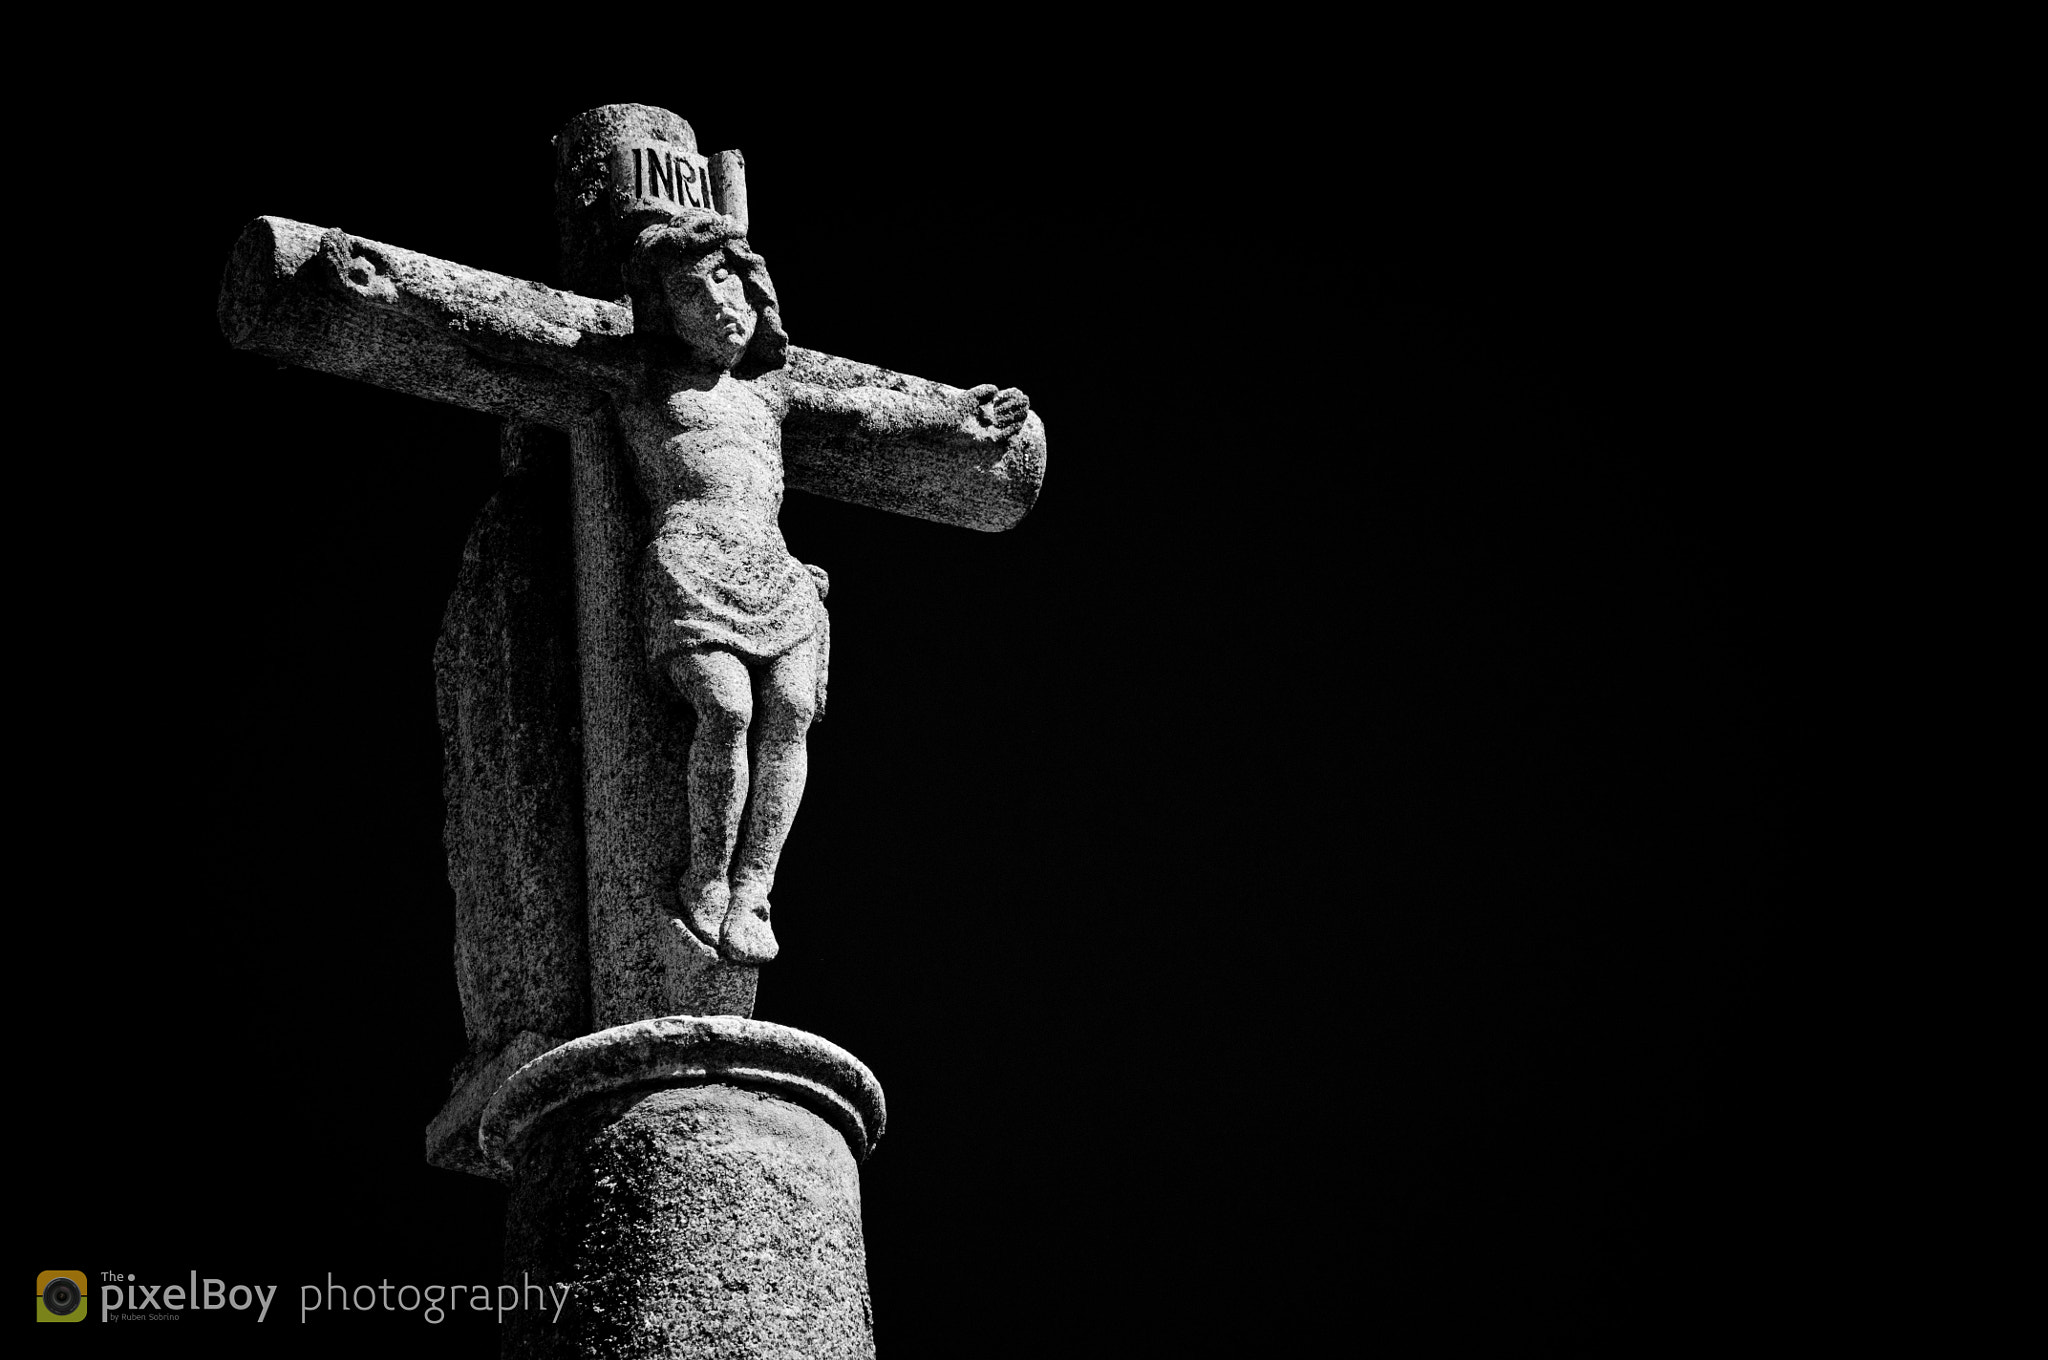 Photograph The Passion of the Christ by The PixelBoy  on 500px